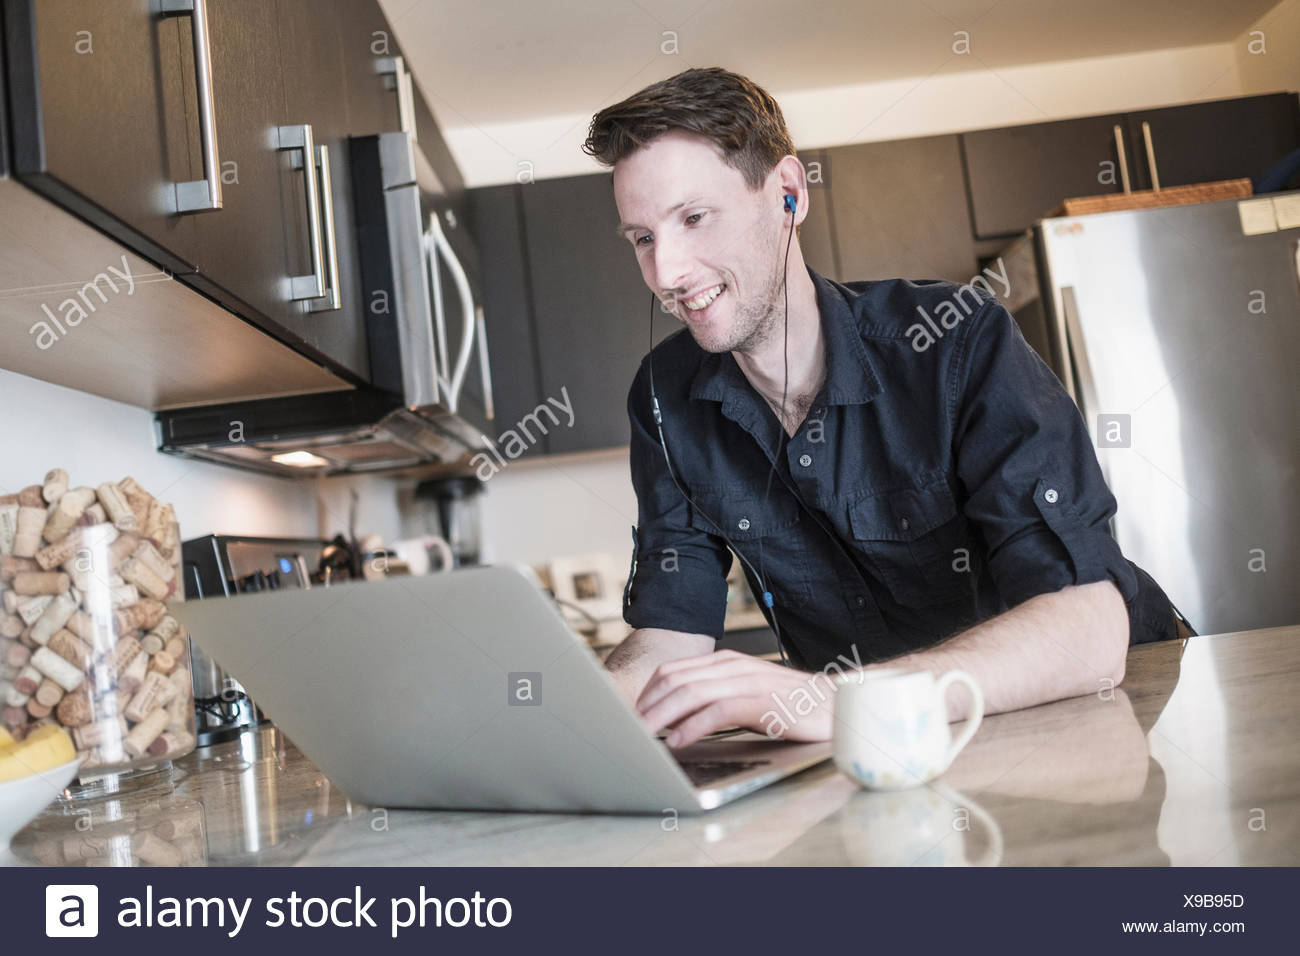 Man smiling while working on laptop computer in kitchen - Stock Image